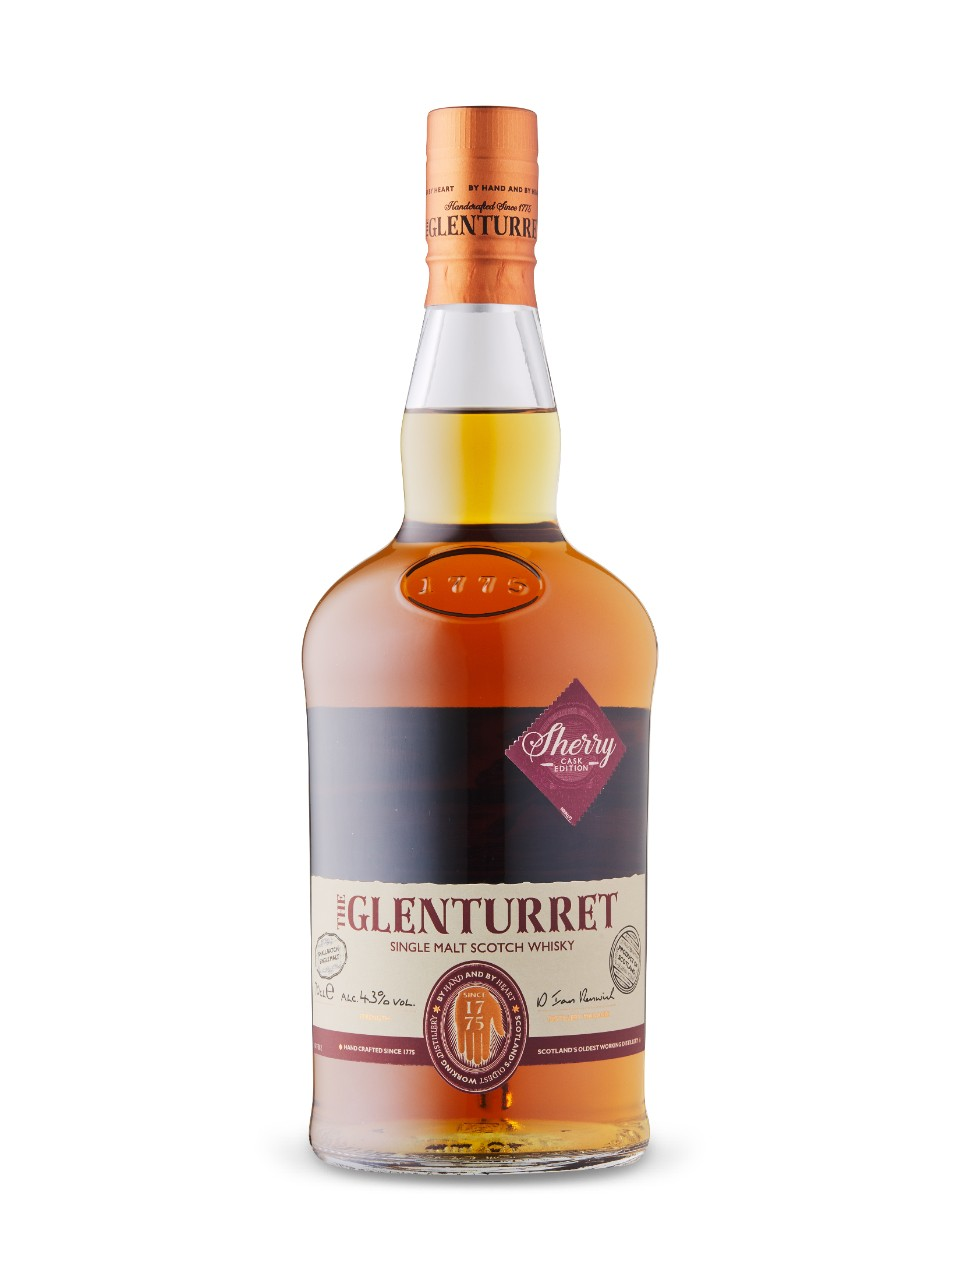 The Glenturret Sherry Cask Edition from LCBO